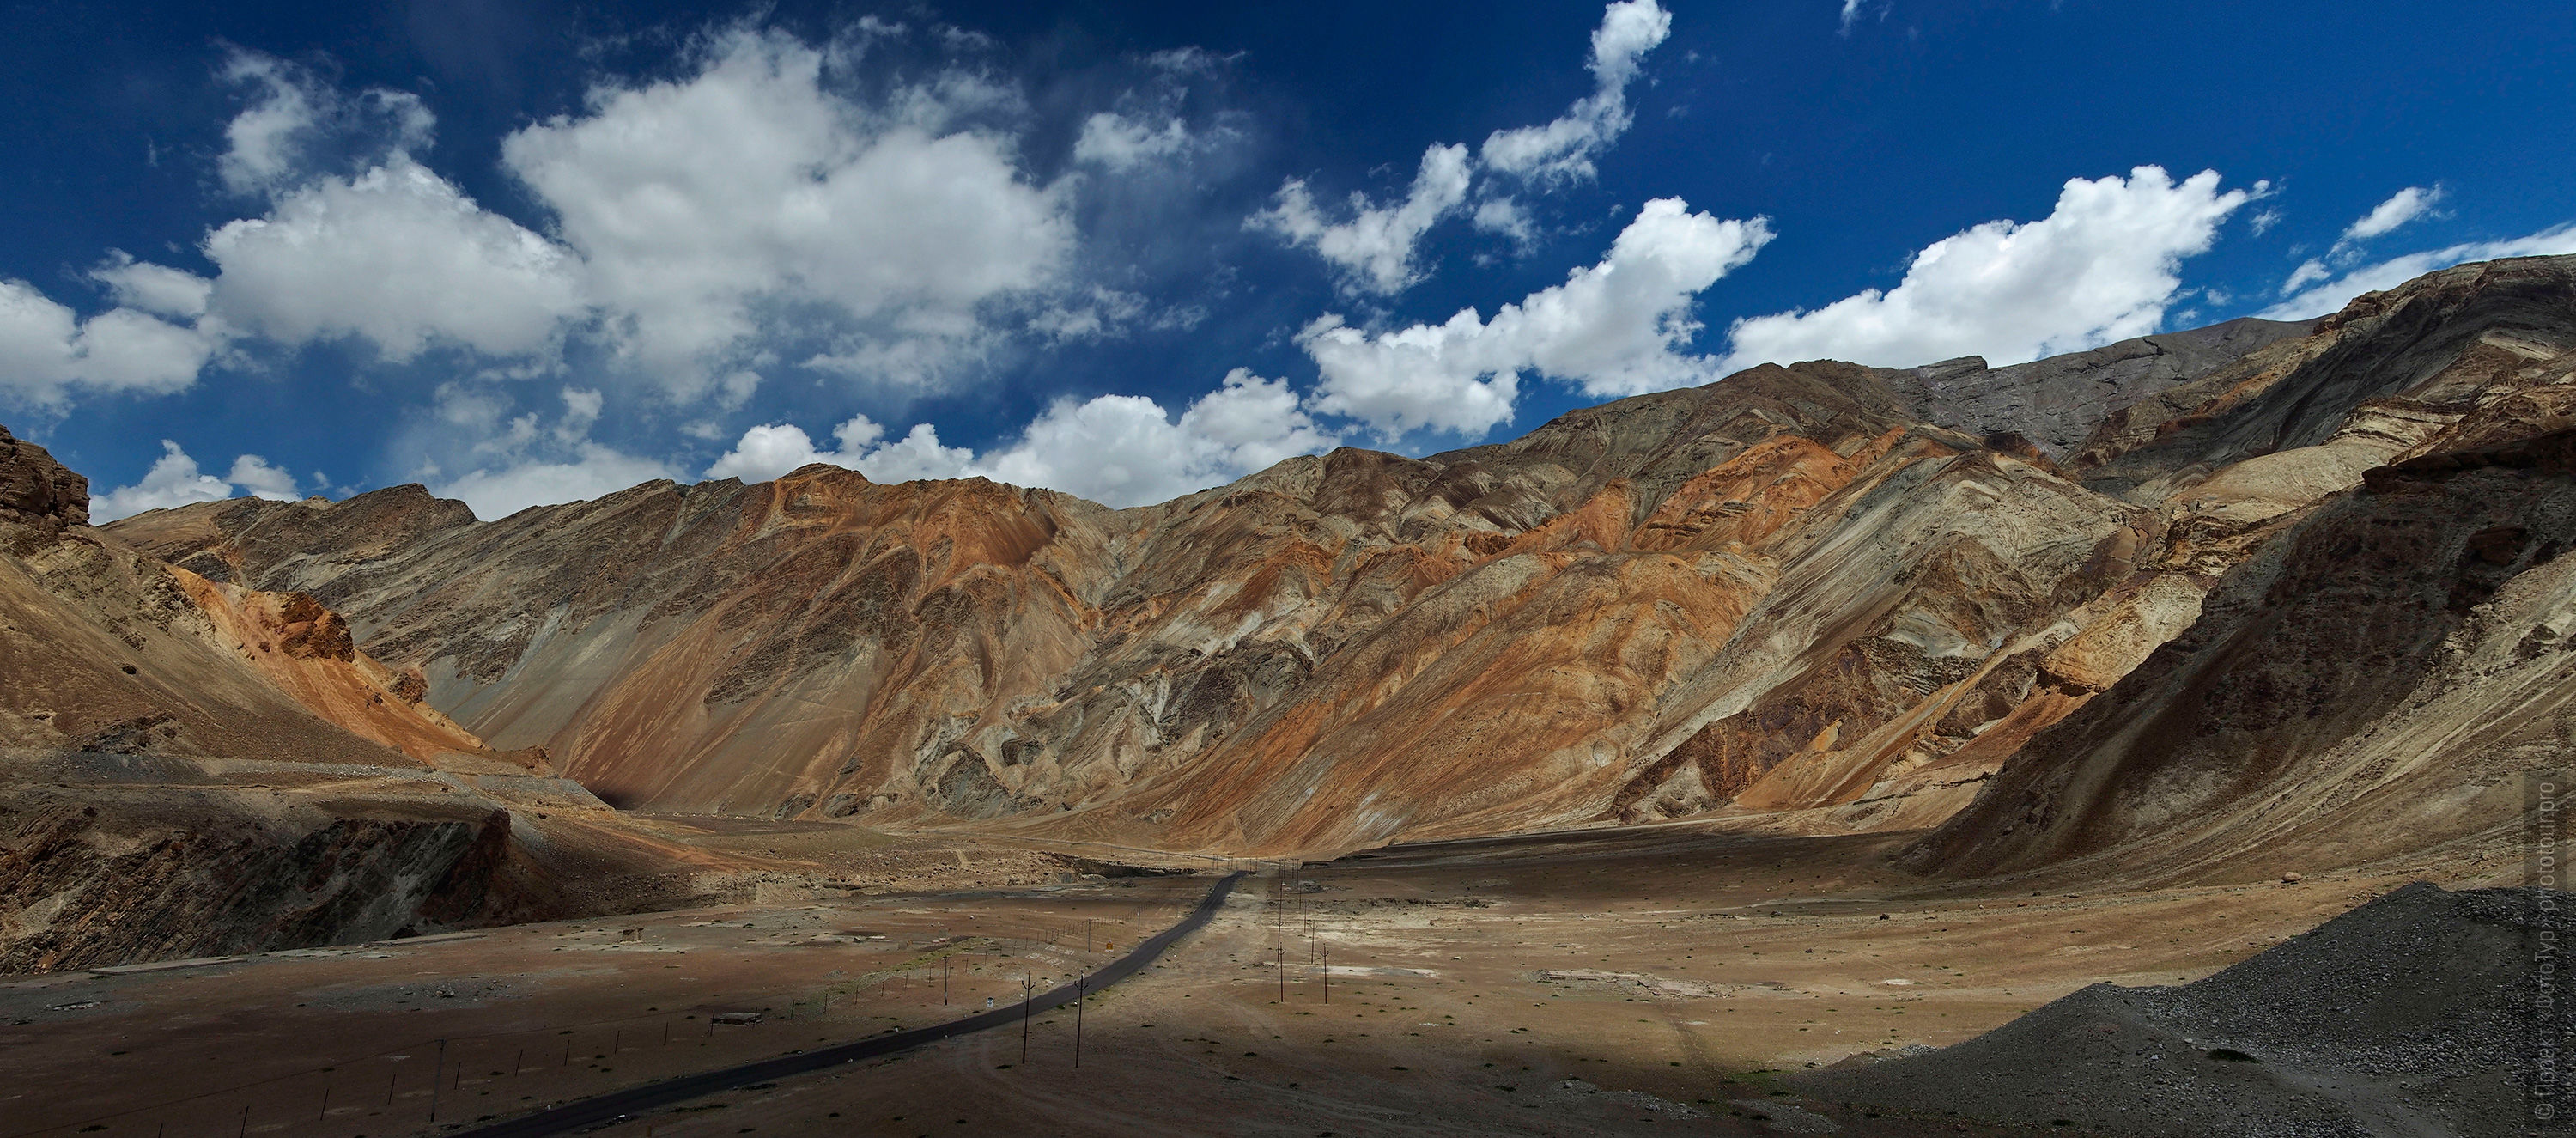 Da Hanu Valley. Tour Legends of Tibet: Ladakh, Lamayuru, Da Khan and Nubra, 19.09. - 28.09.2019 G.